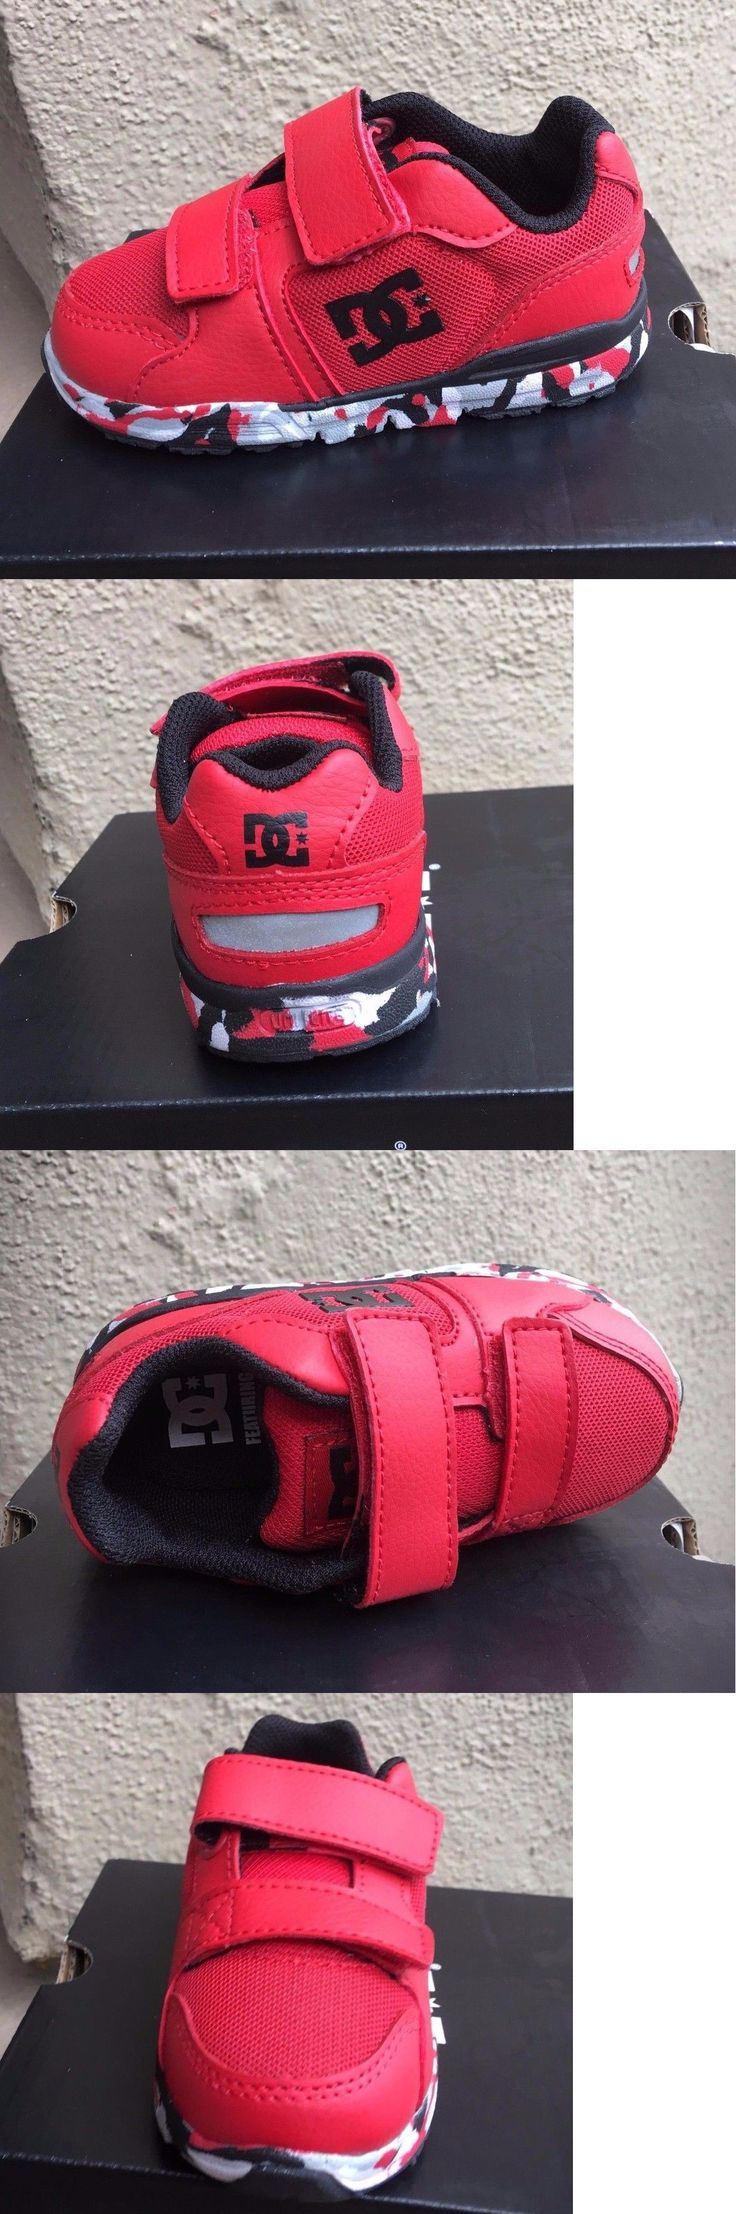 Baby Shoes 147285: Dc Forter V Black Red White Infant Toddler Baby Boy Shoes Sneakers Size 6-9 -> BUY IT NOW ONLY: $33.95 on eBay!